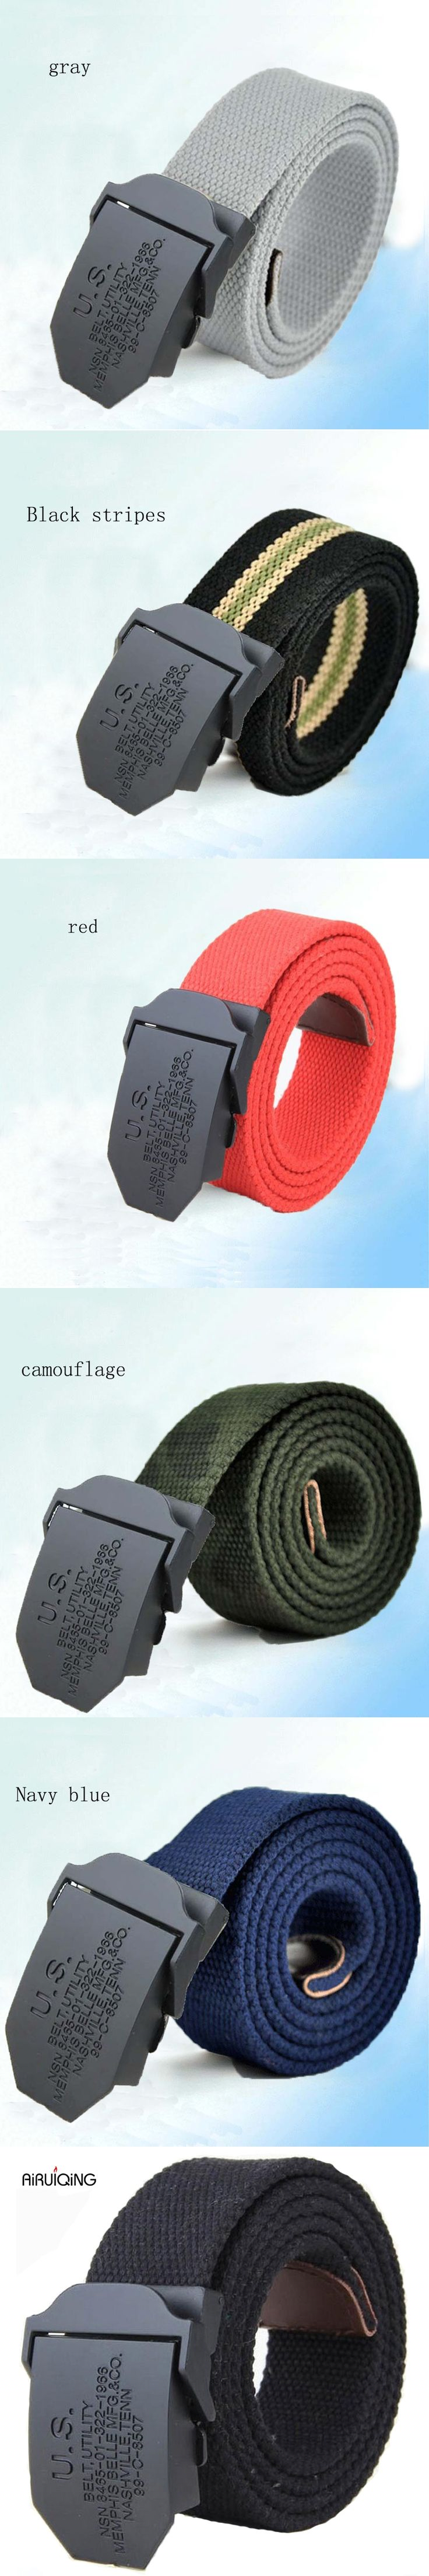 hot 2017 fashion mens canvas belt High quality luxury belt men brand outdoor sport Military jeans belts black army green 110 140